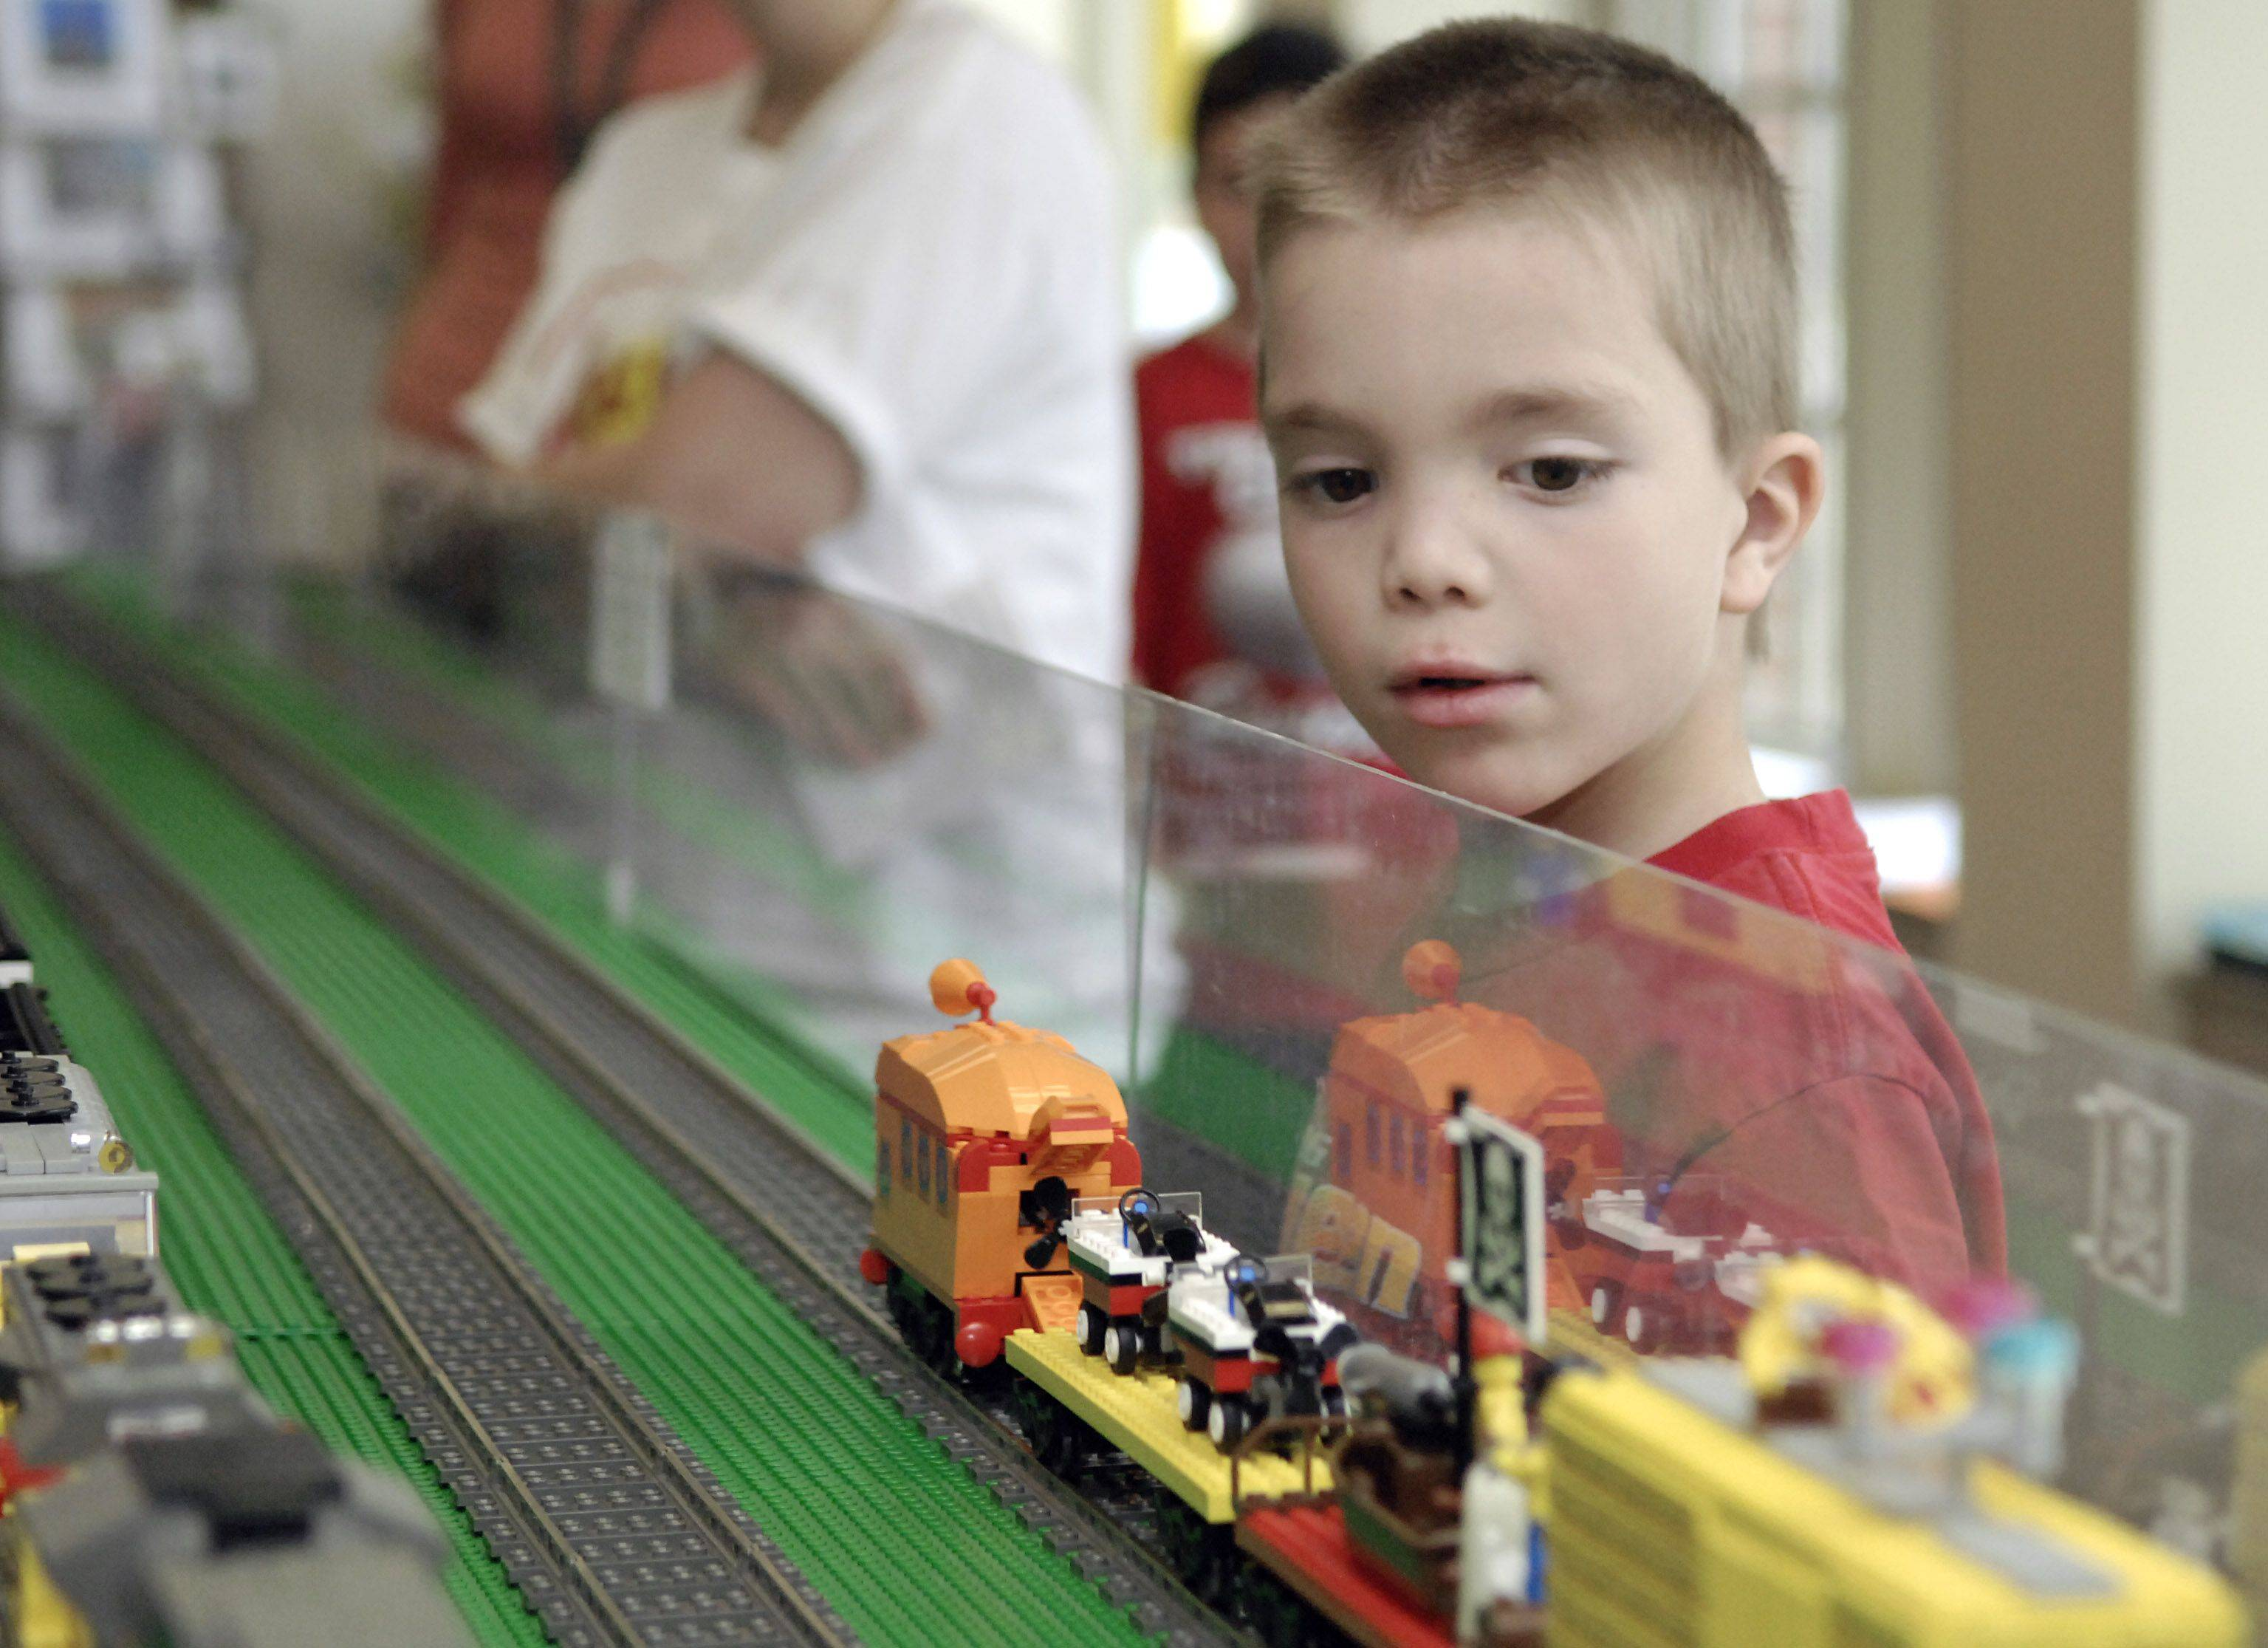 Luke Schafer, 7, of Batavia watches an operating Lego train go by at a previous year's Lego event at the Geneva History Center. This year's Lego Train Club event takes place Saturday and Sunday.